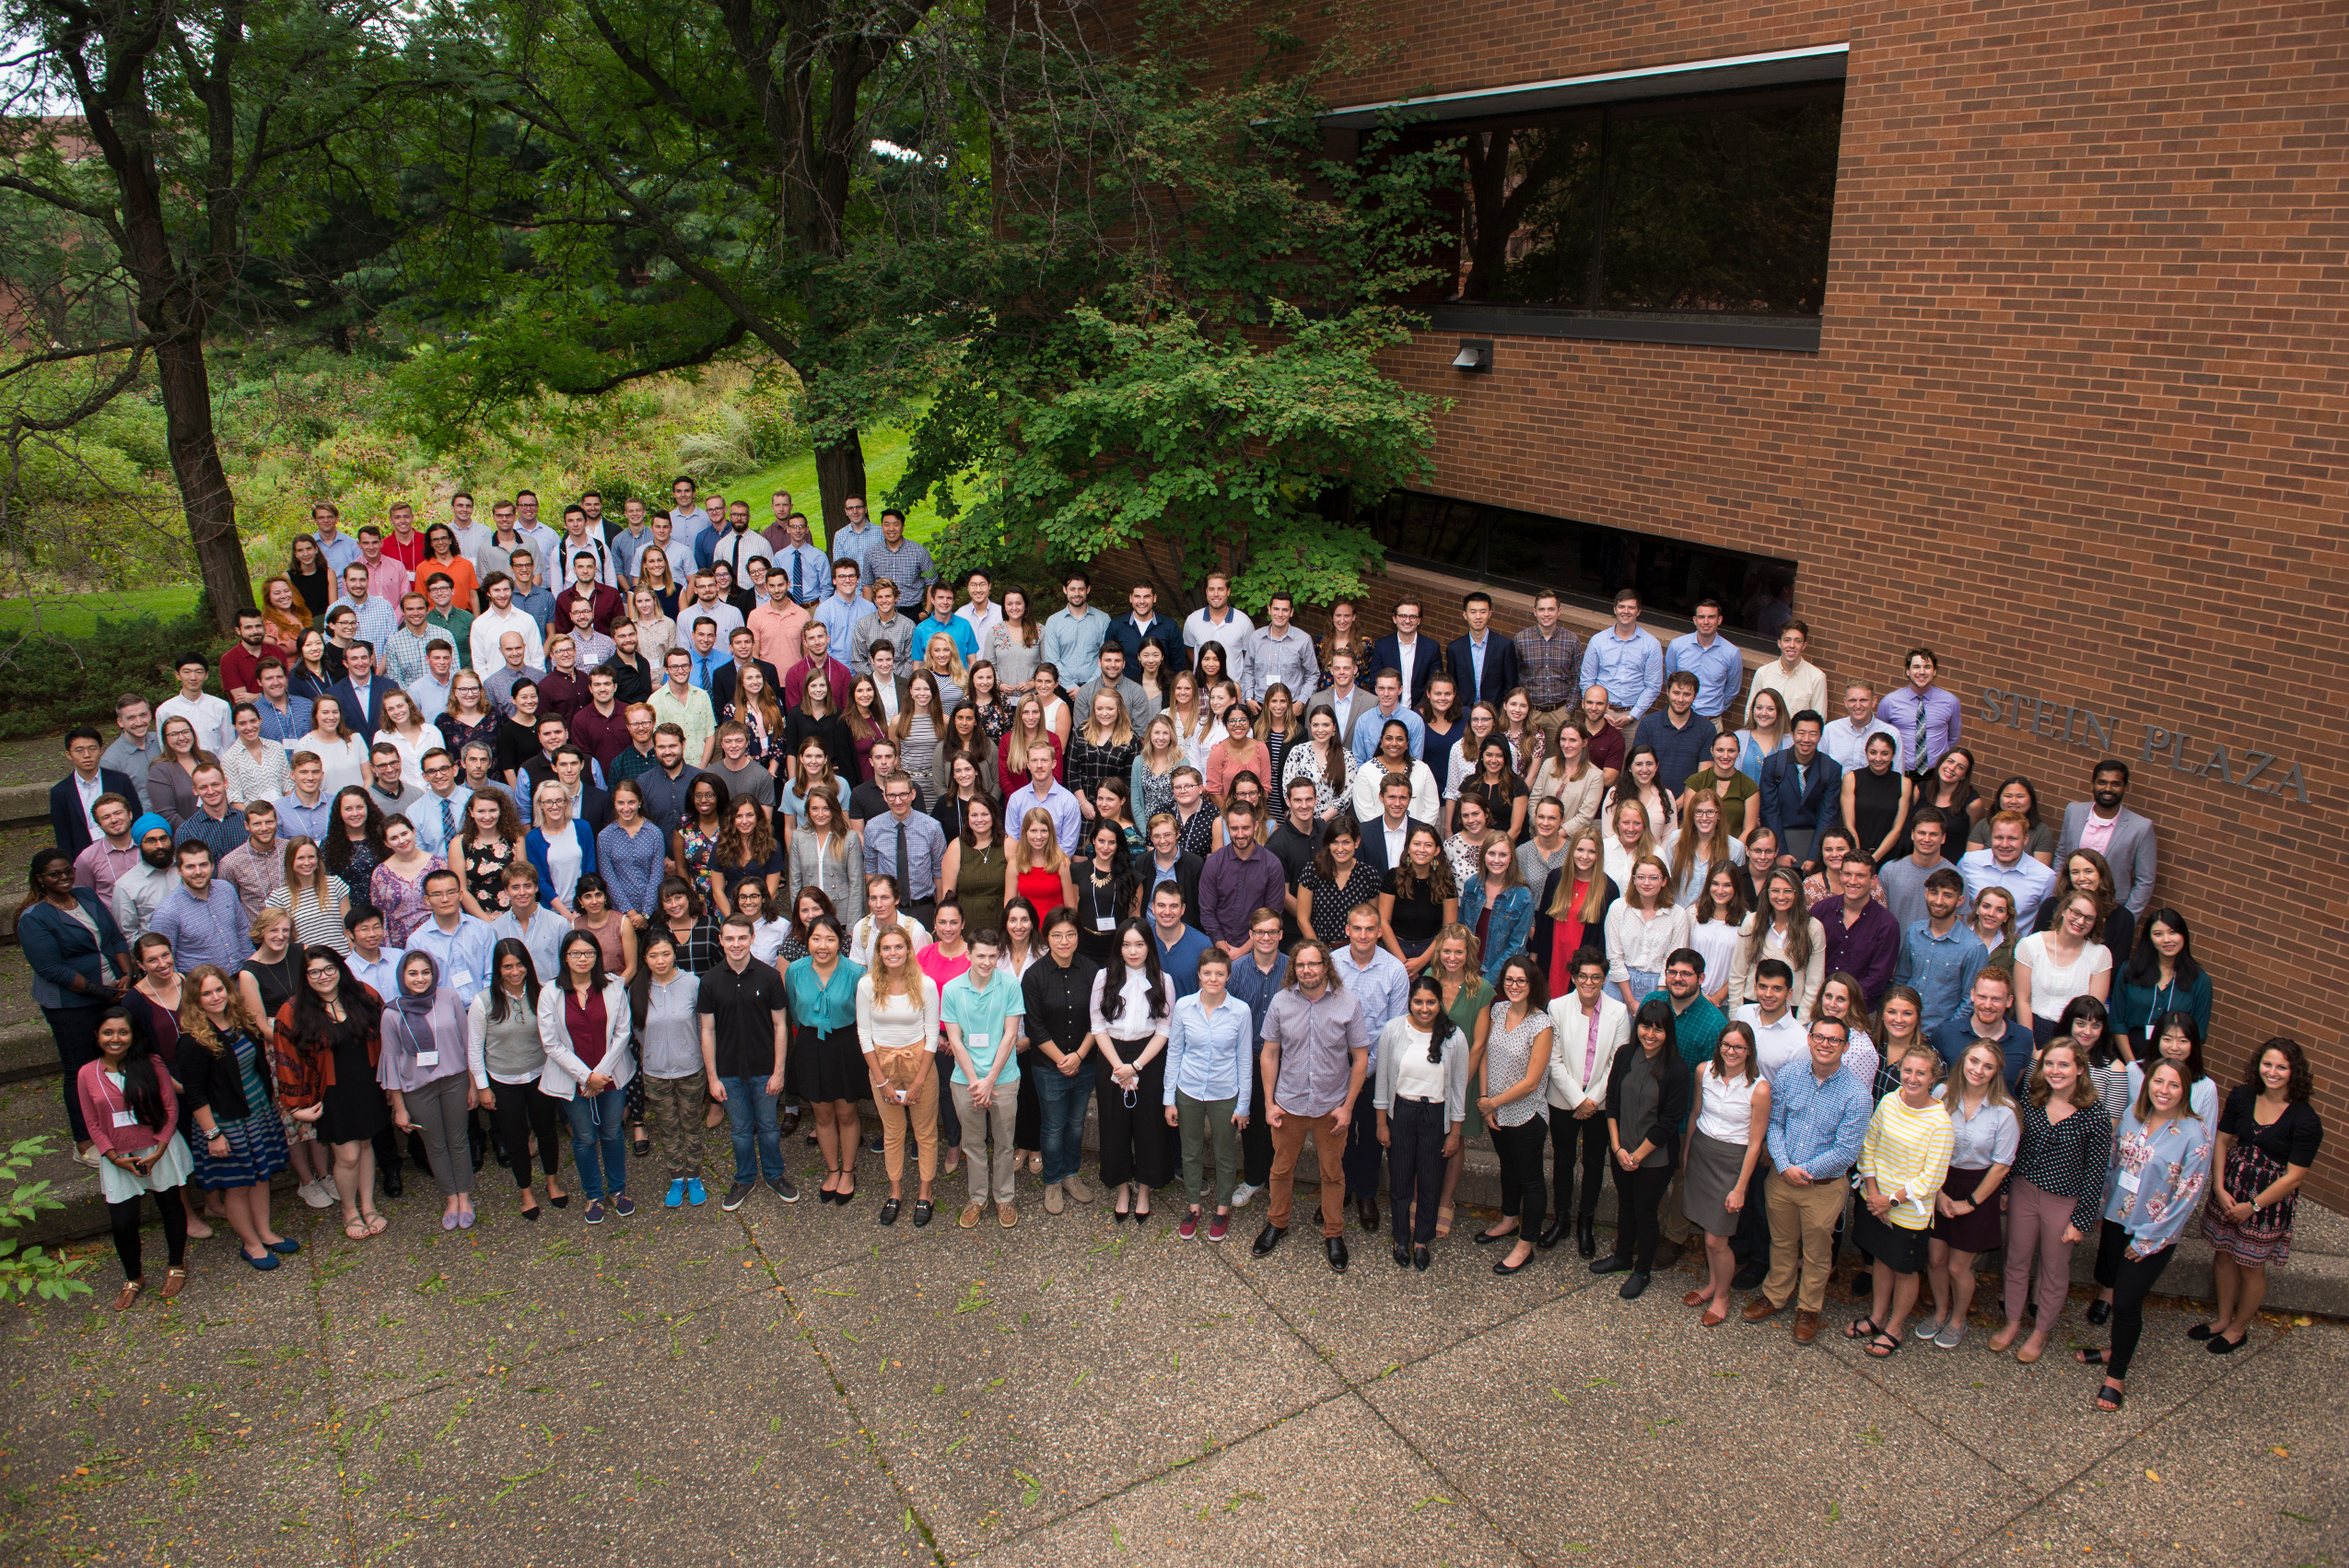 MN Law JD class of 2021